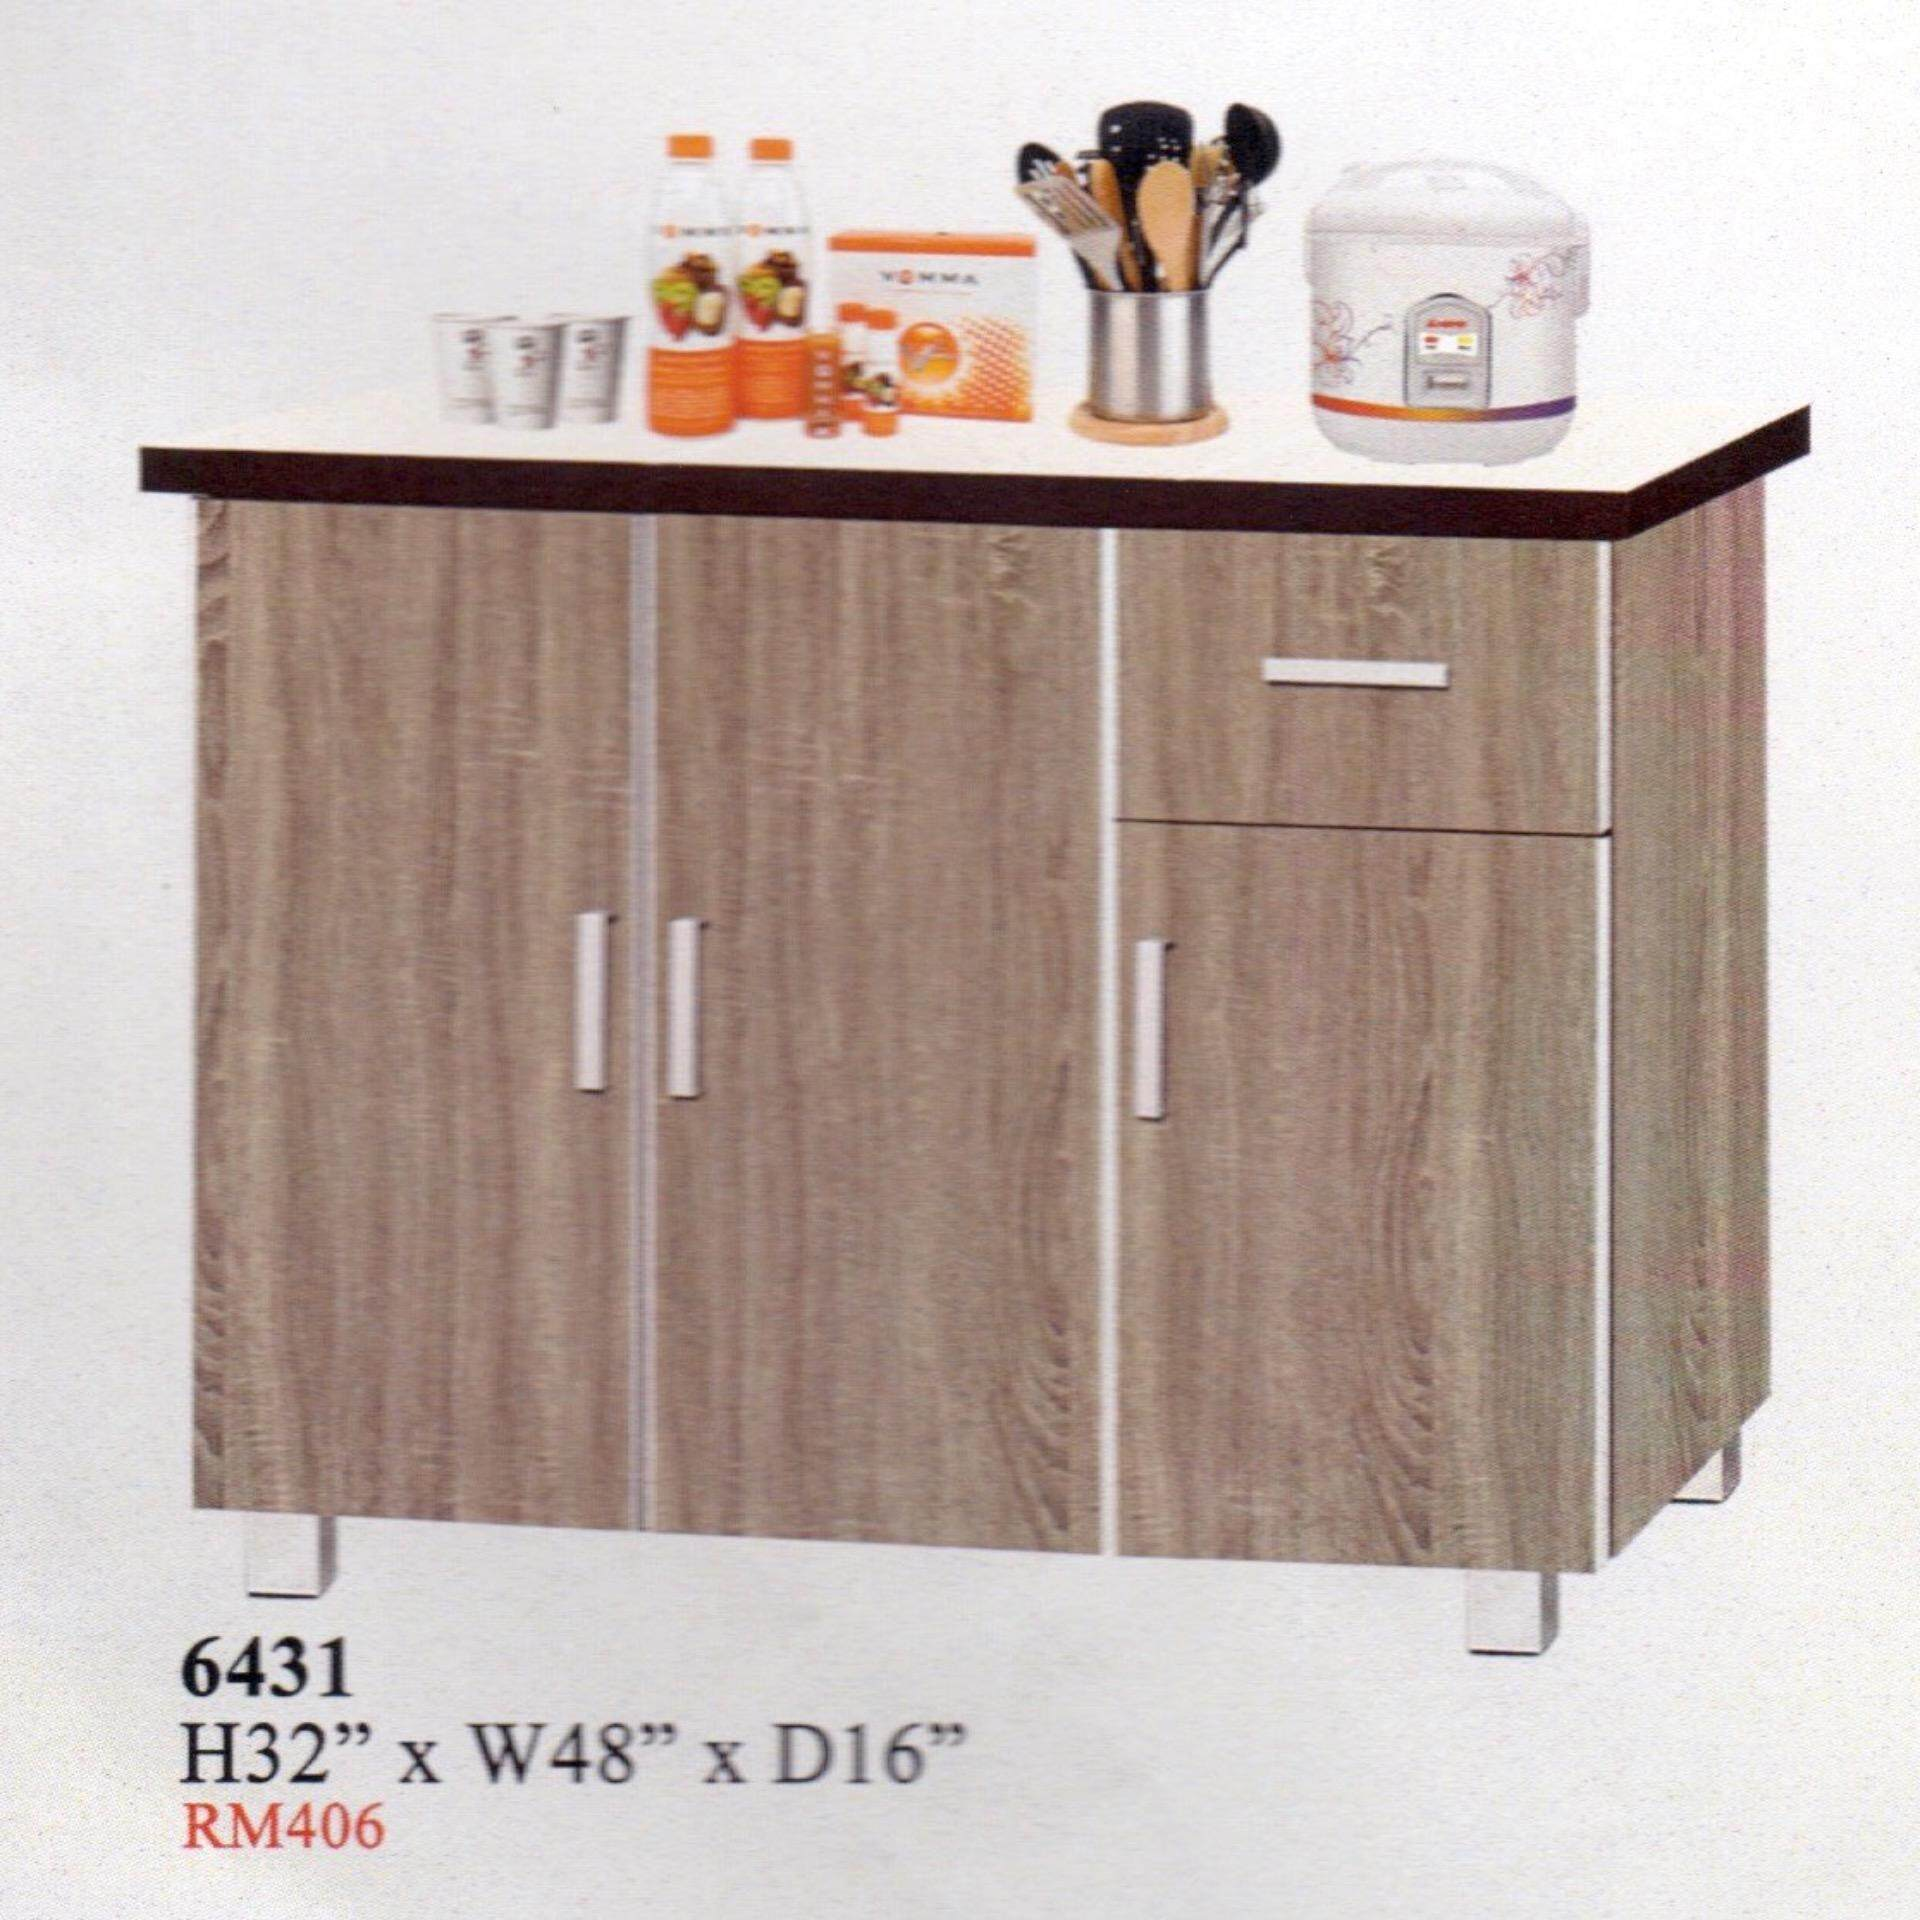 Ready-Fixed 4 Feet Kitchen Cabinet With Mosaic Top 6431 L1219MM X W406MM X 812MM